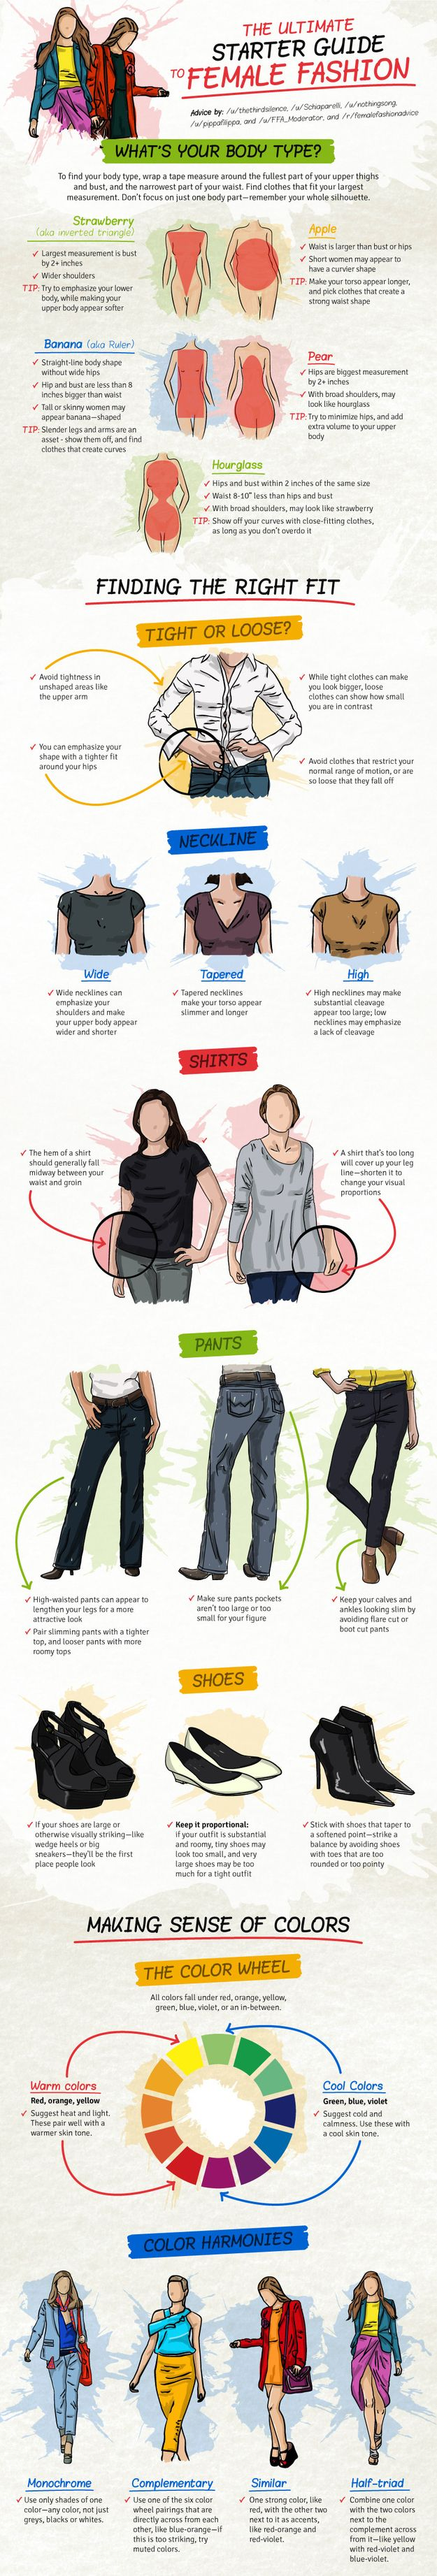 Everything You Need To Know About Women's Fashion In One Infographic.